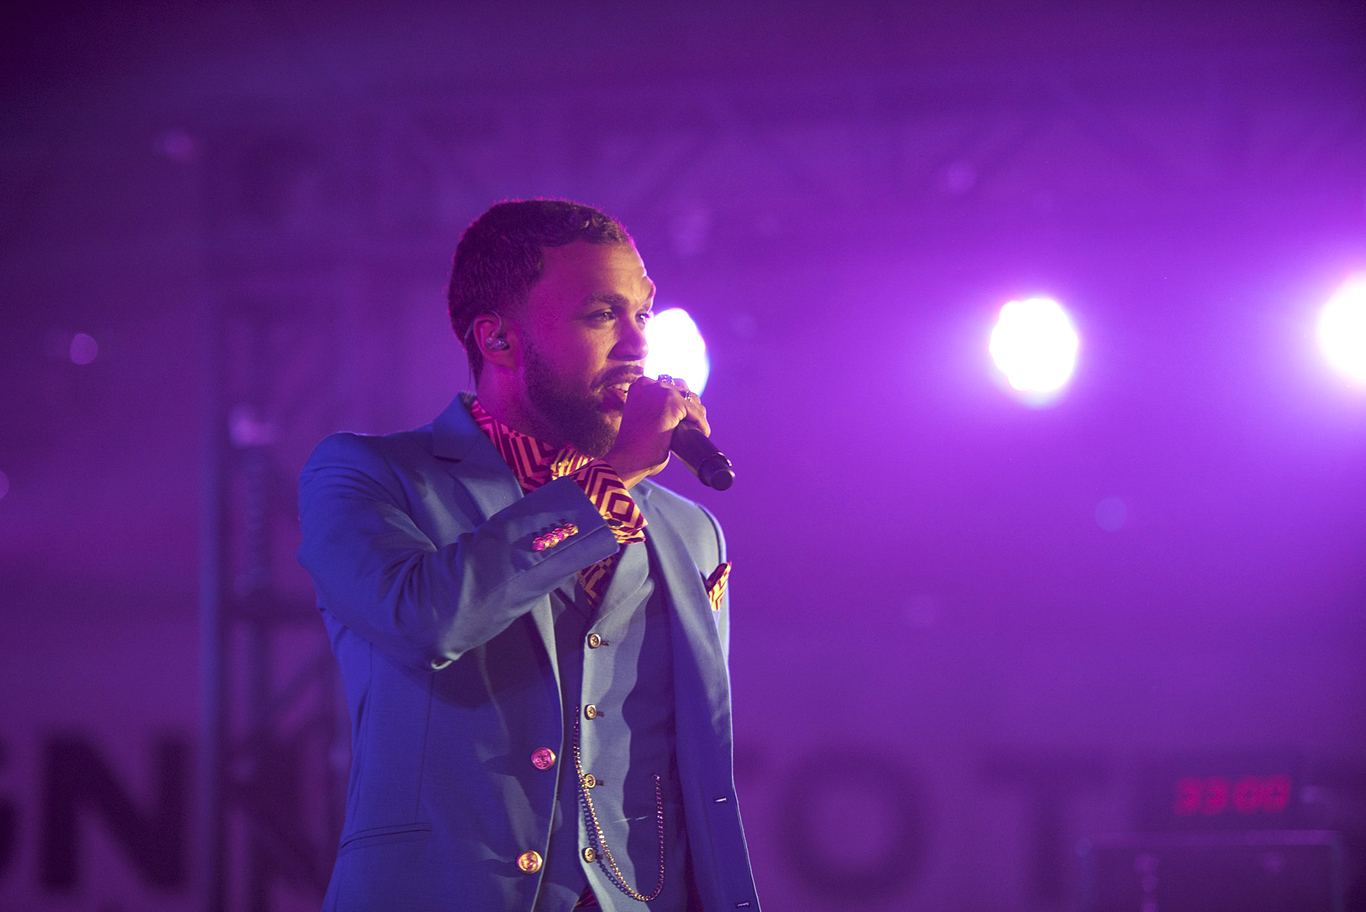 jidenna perfoming at Essence Festical